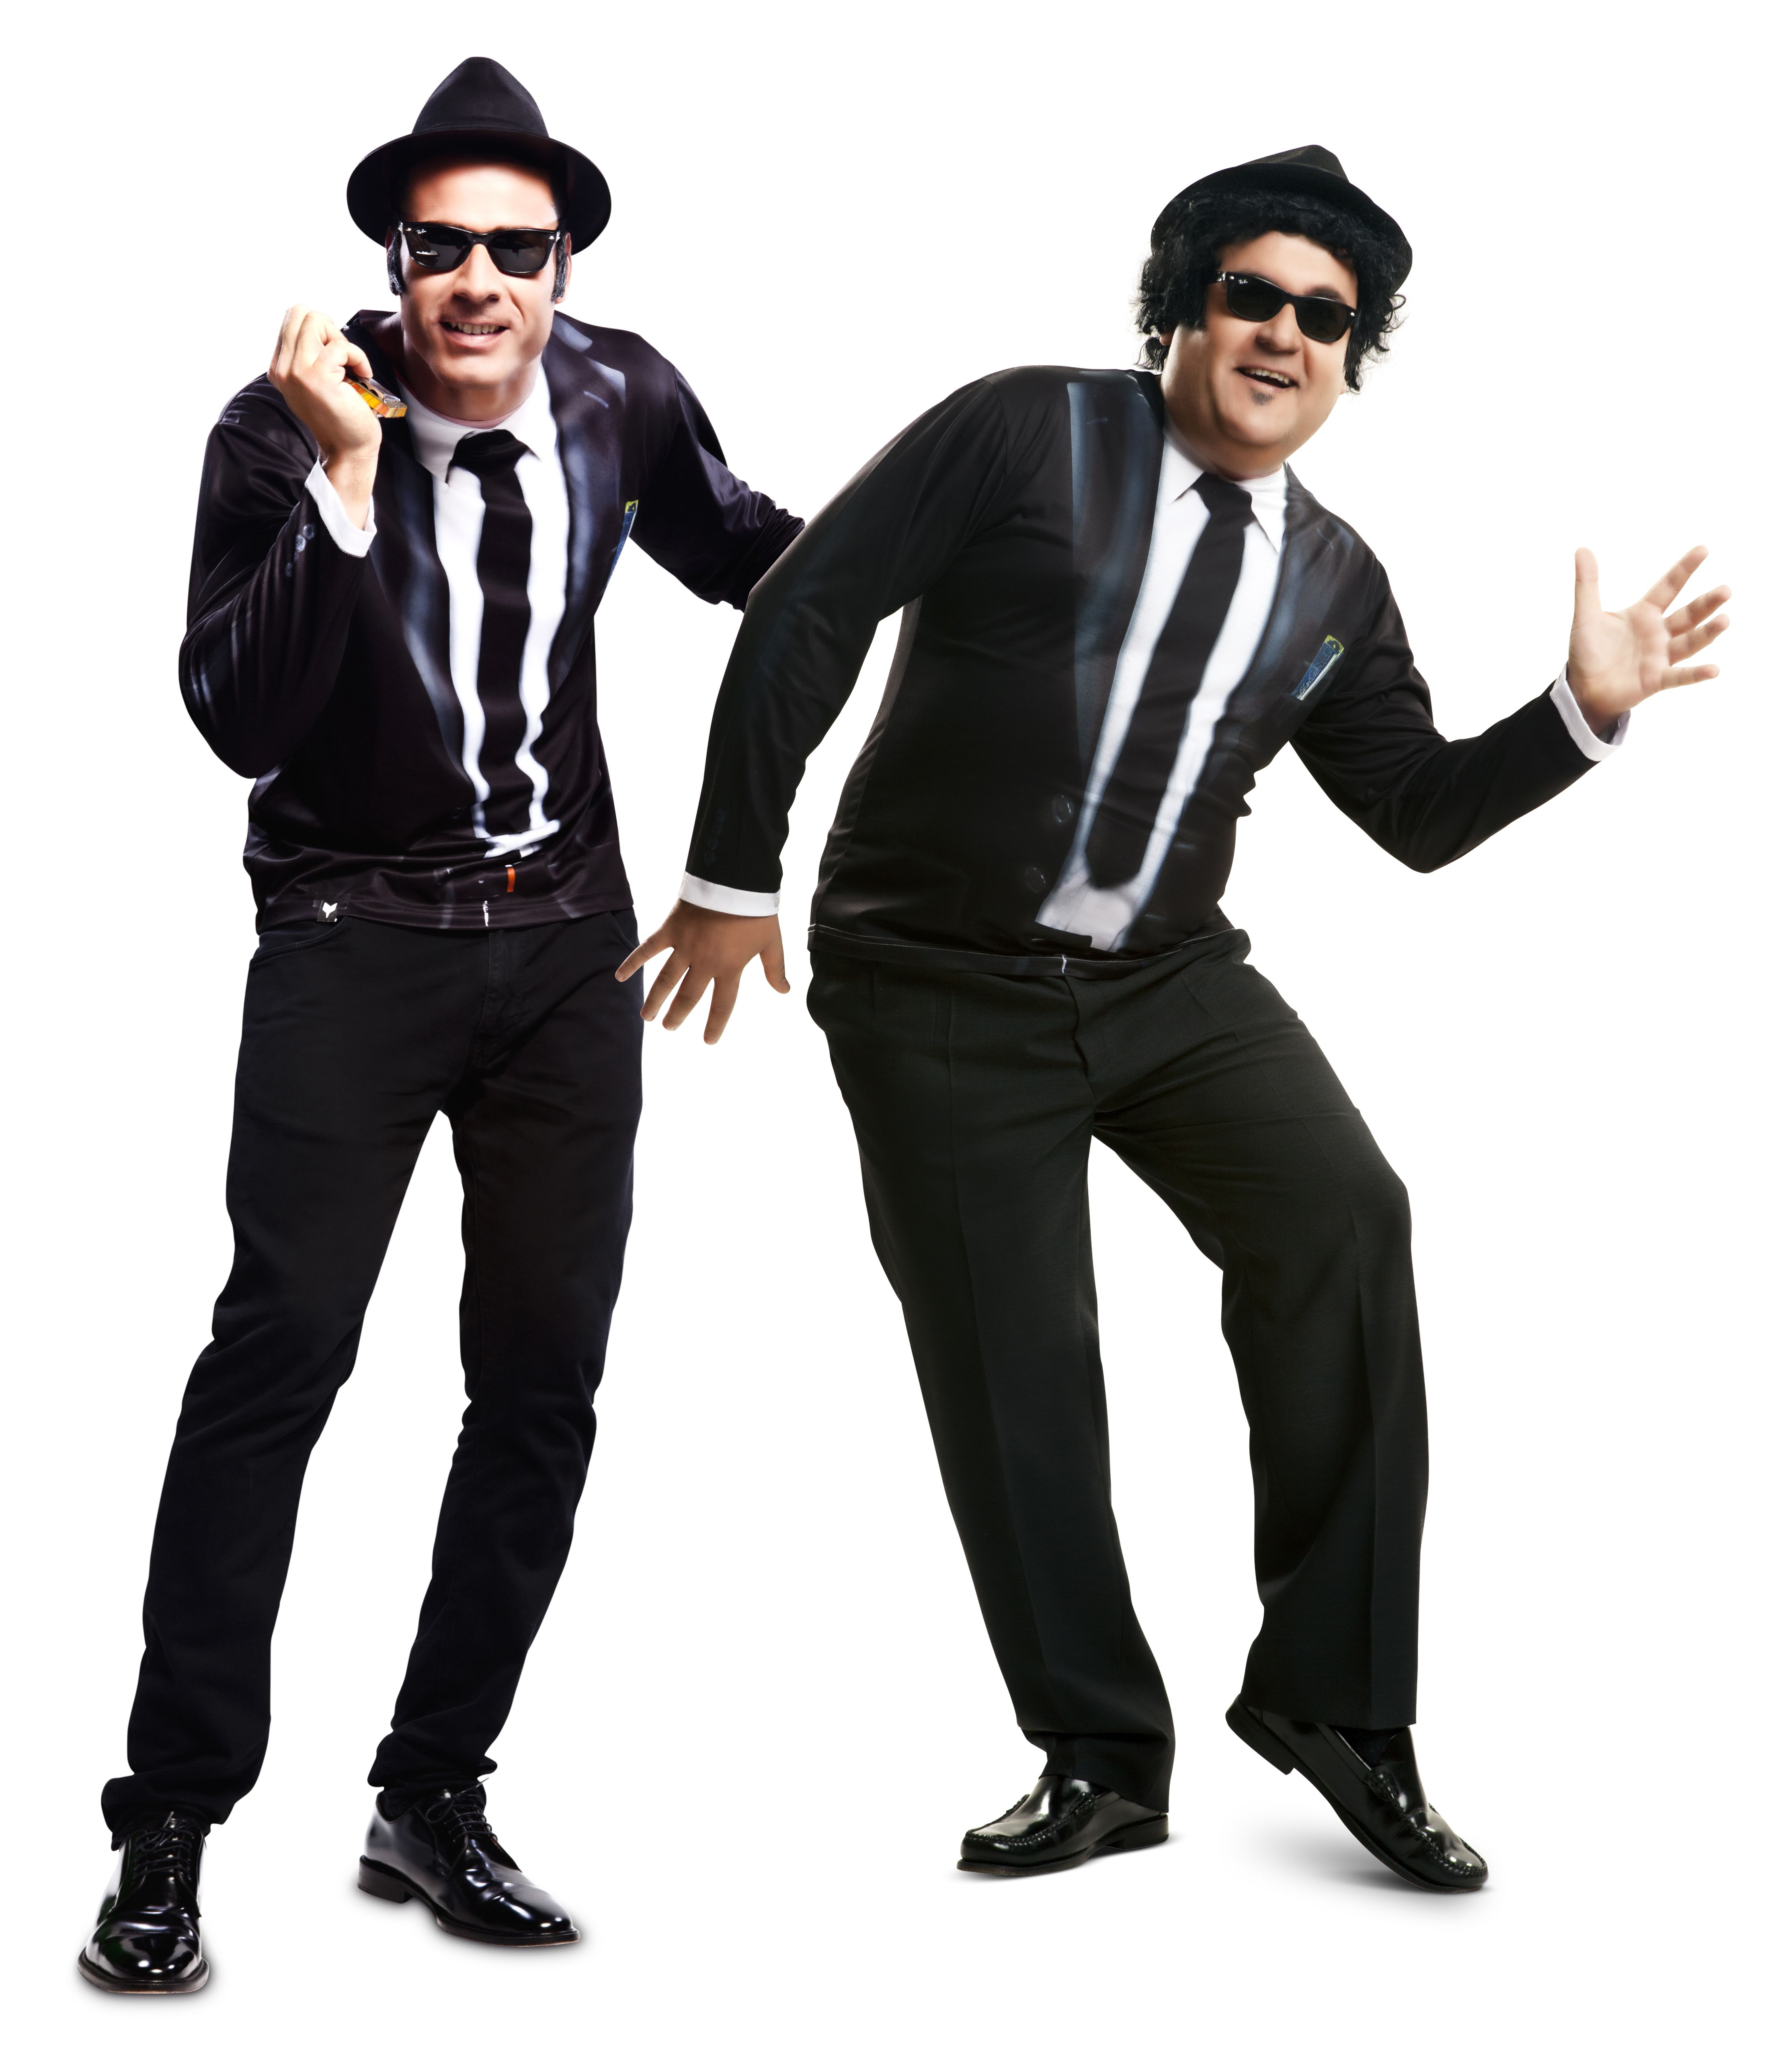 Disfraz Blues Brothers Costume Costumes Disfraces Originales Original Música Fan Blues Brothers Costume Blues Brothers Blues